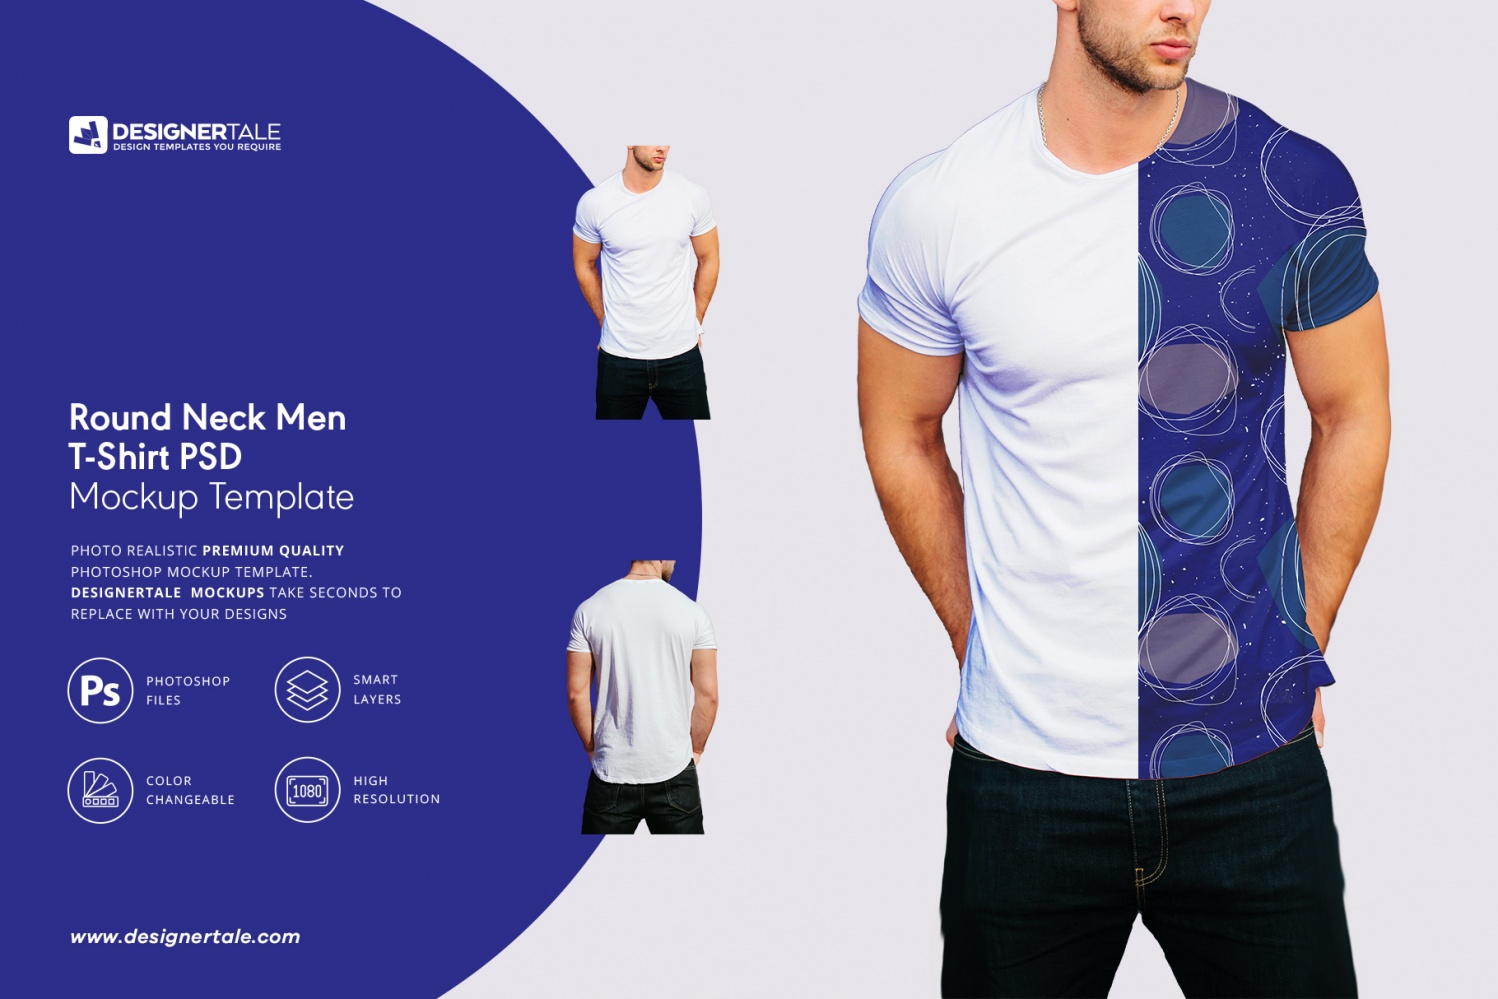 e6fa9c67 round neck men t shirt mockup Photoshop template with two different views  PSD